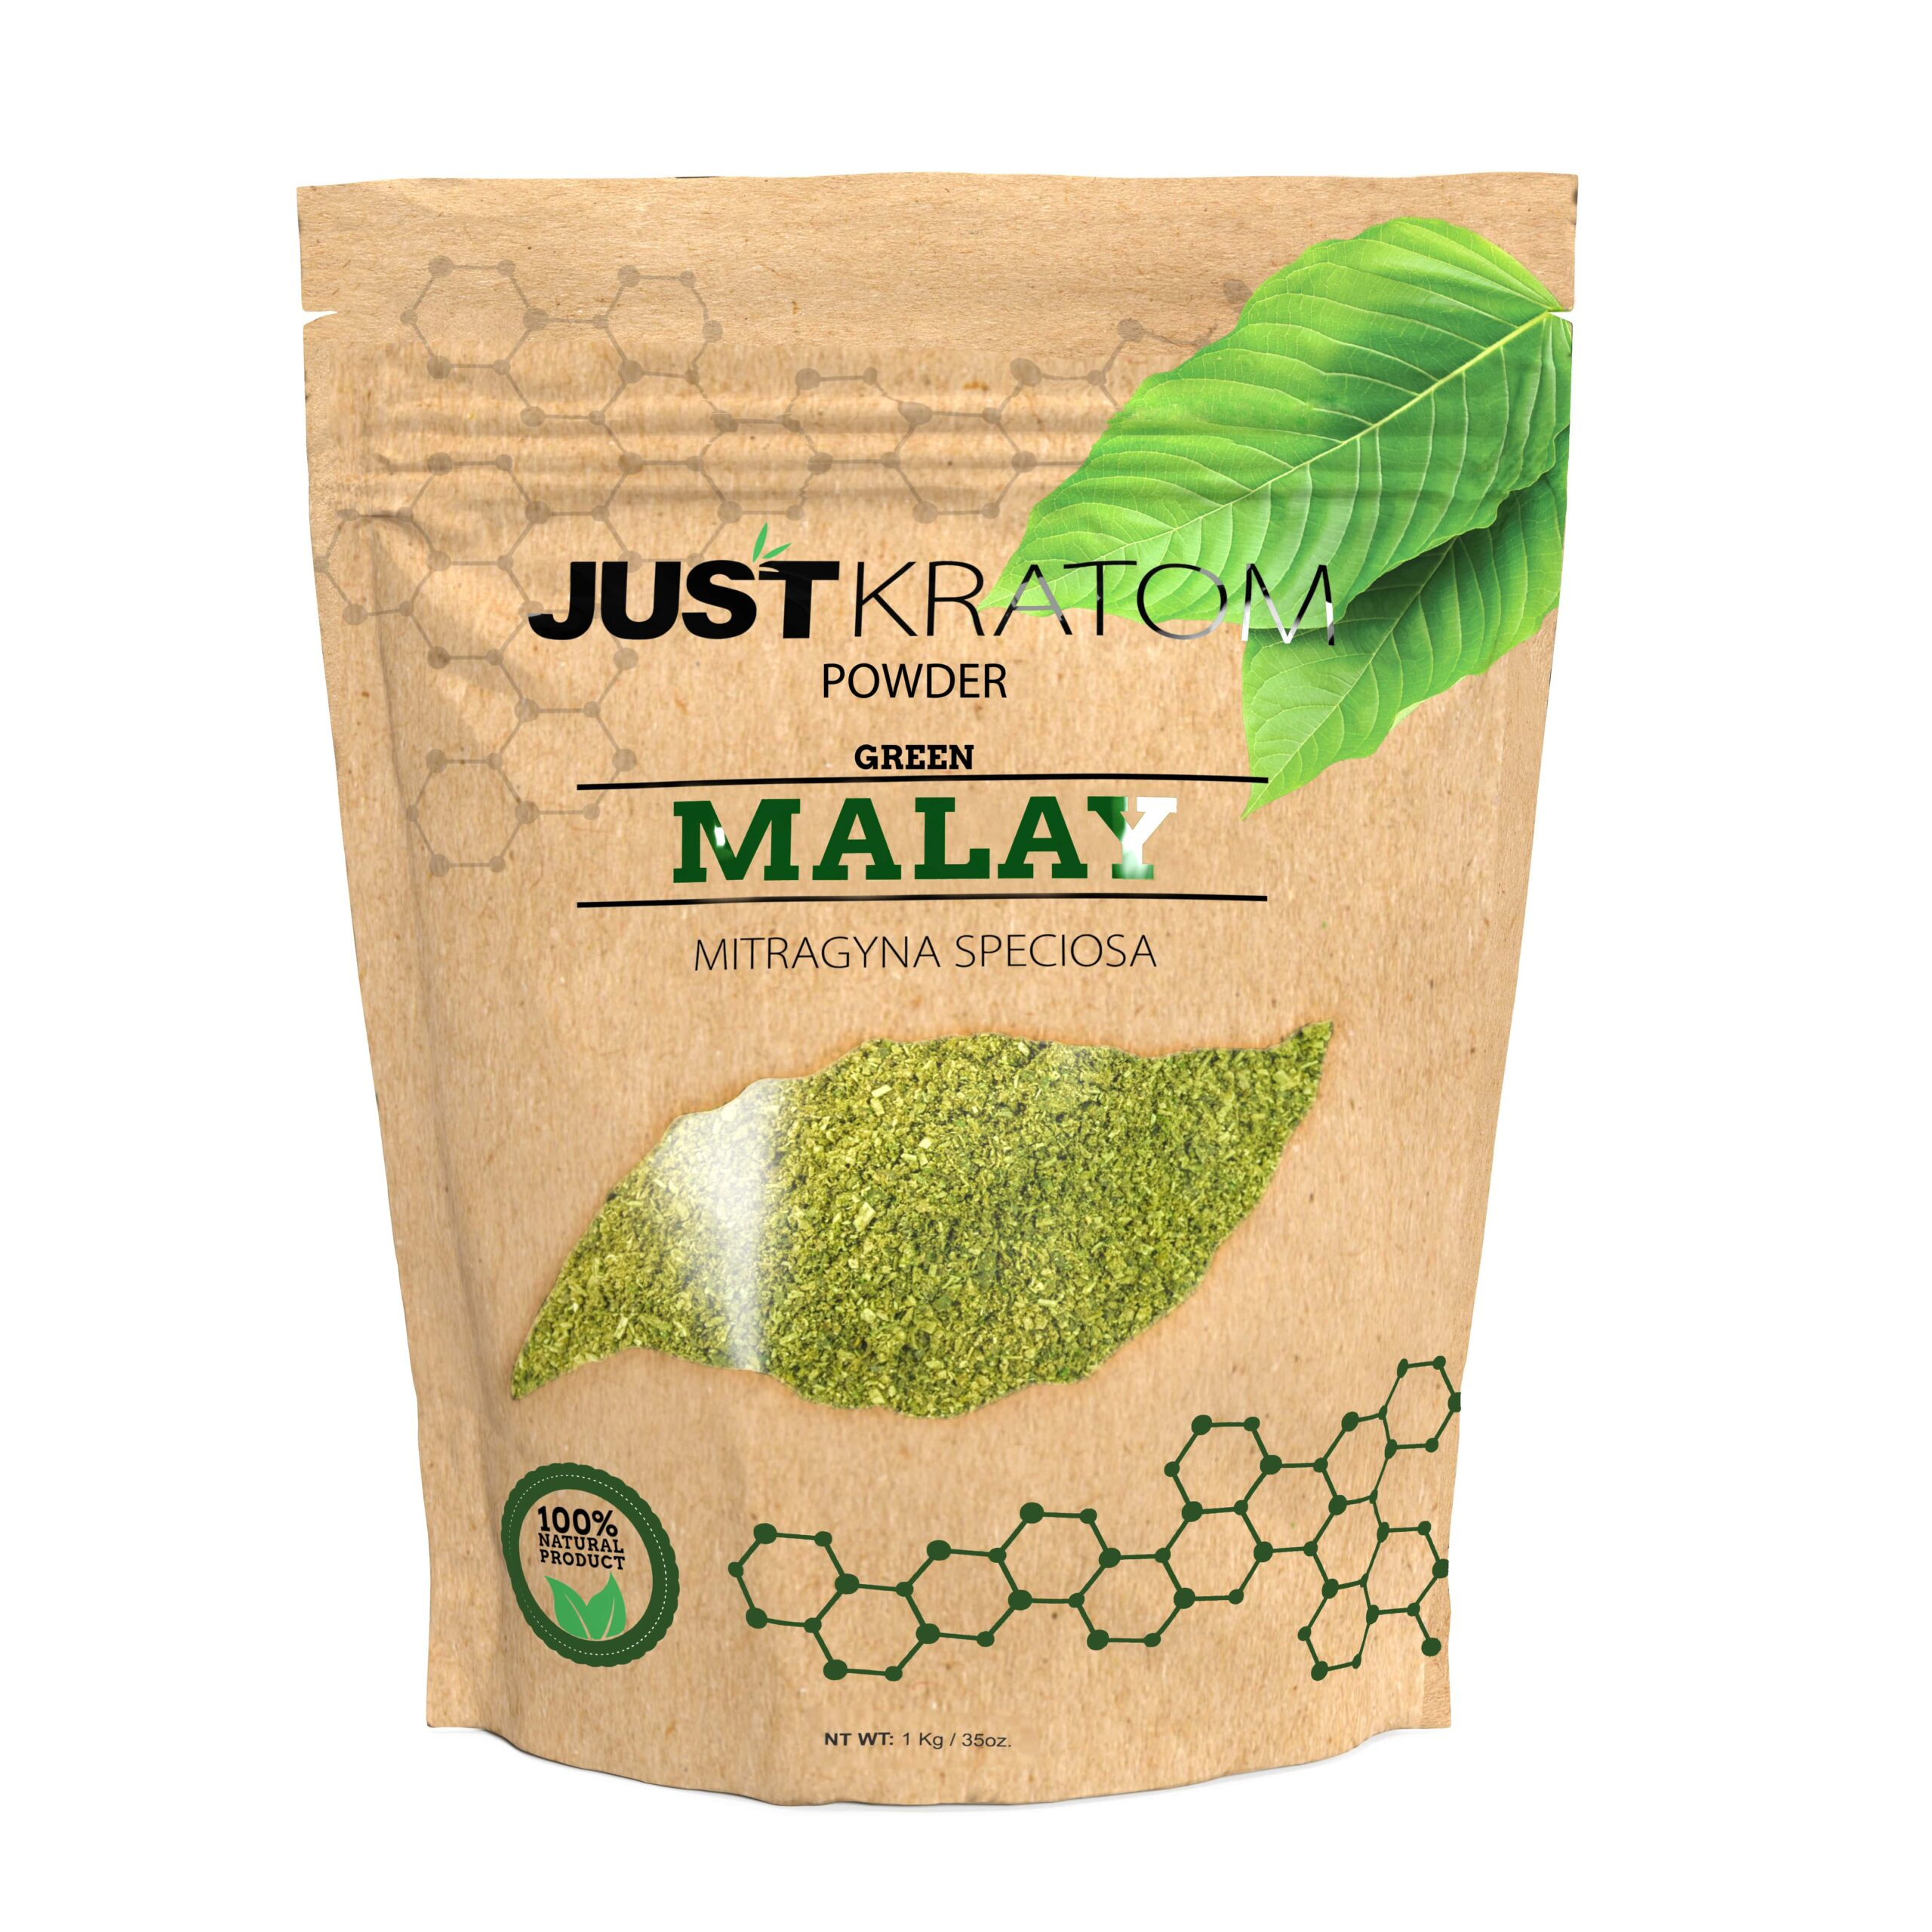 What Is The Strongest Kratom You Can Buy